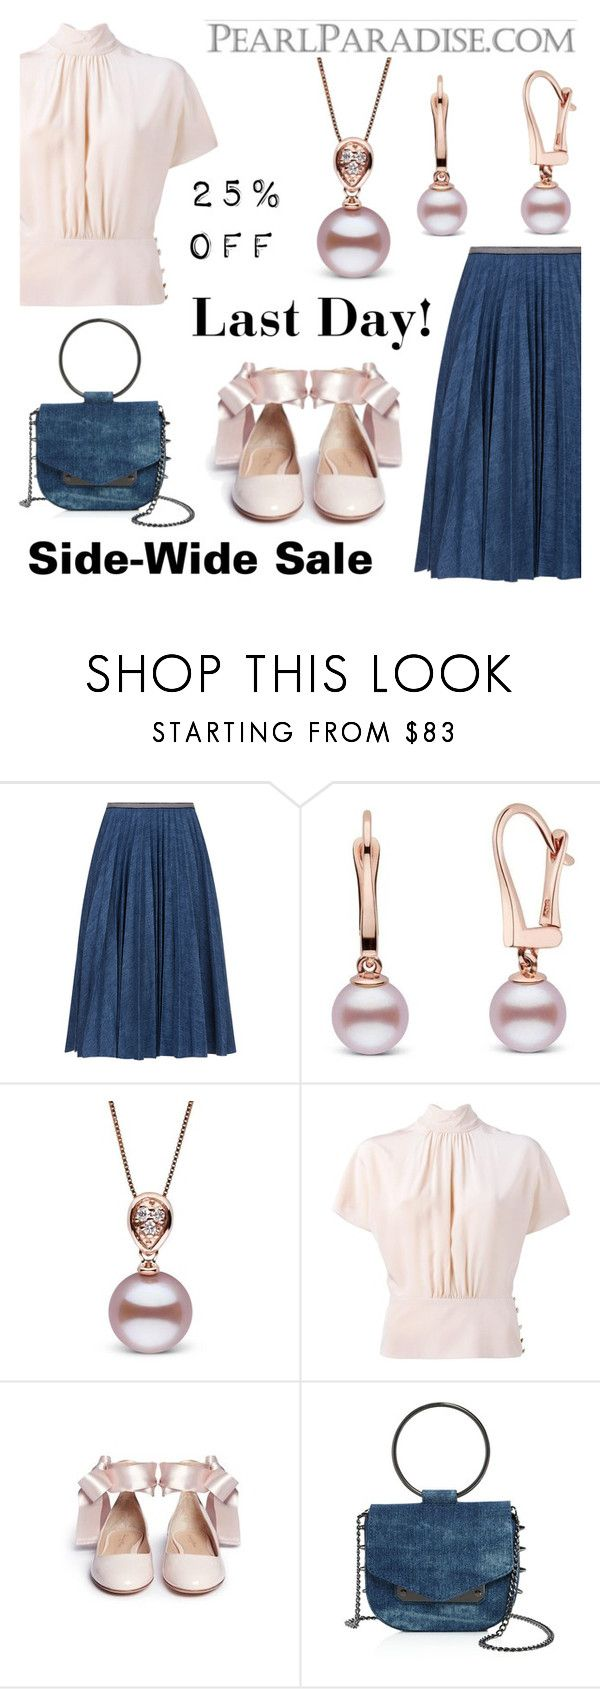 """Last day: Site-Wide Sale 20% OFF"" by pearlparadise ❤ liked on Polyvore featuring Leur Logette, RED Valentino, Nasty Gal and pearlparadise"